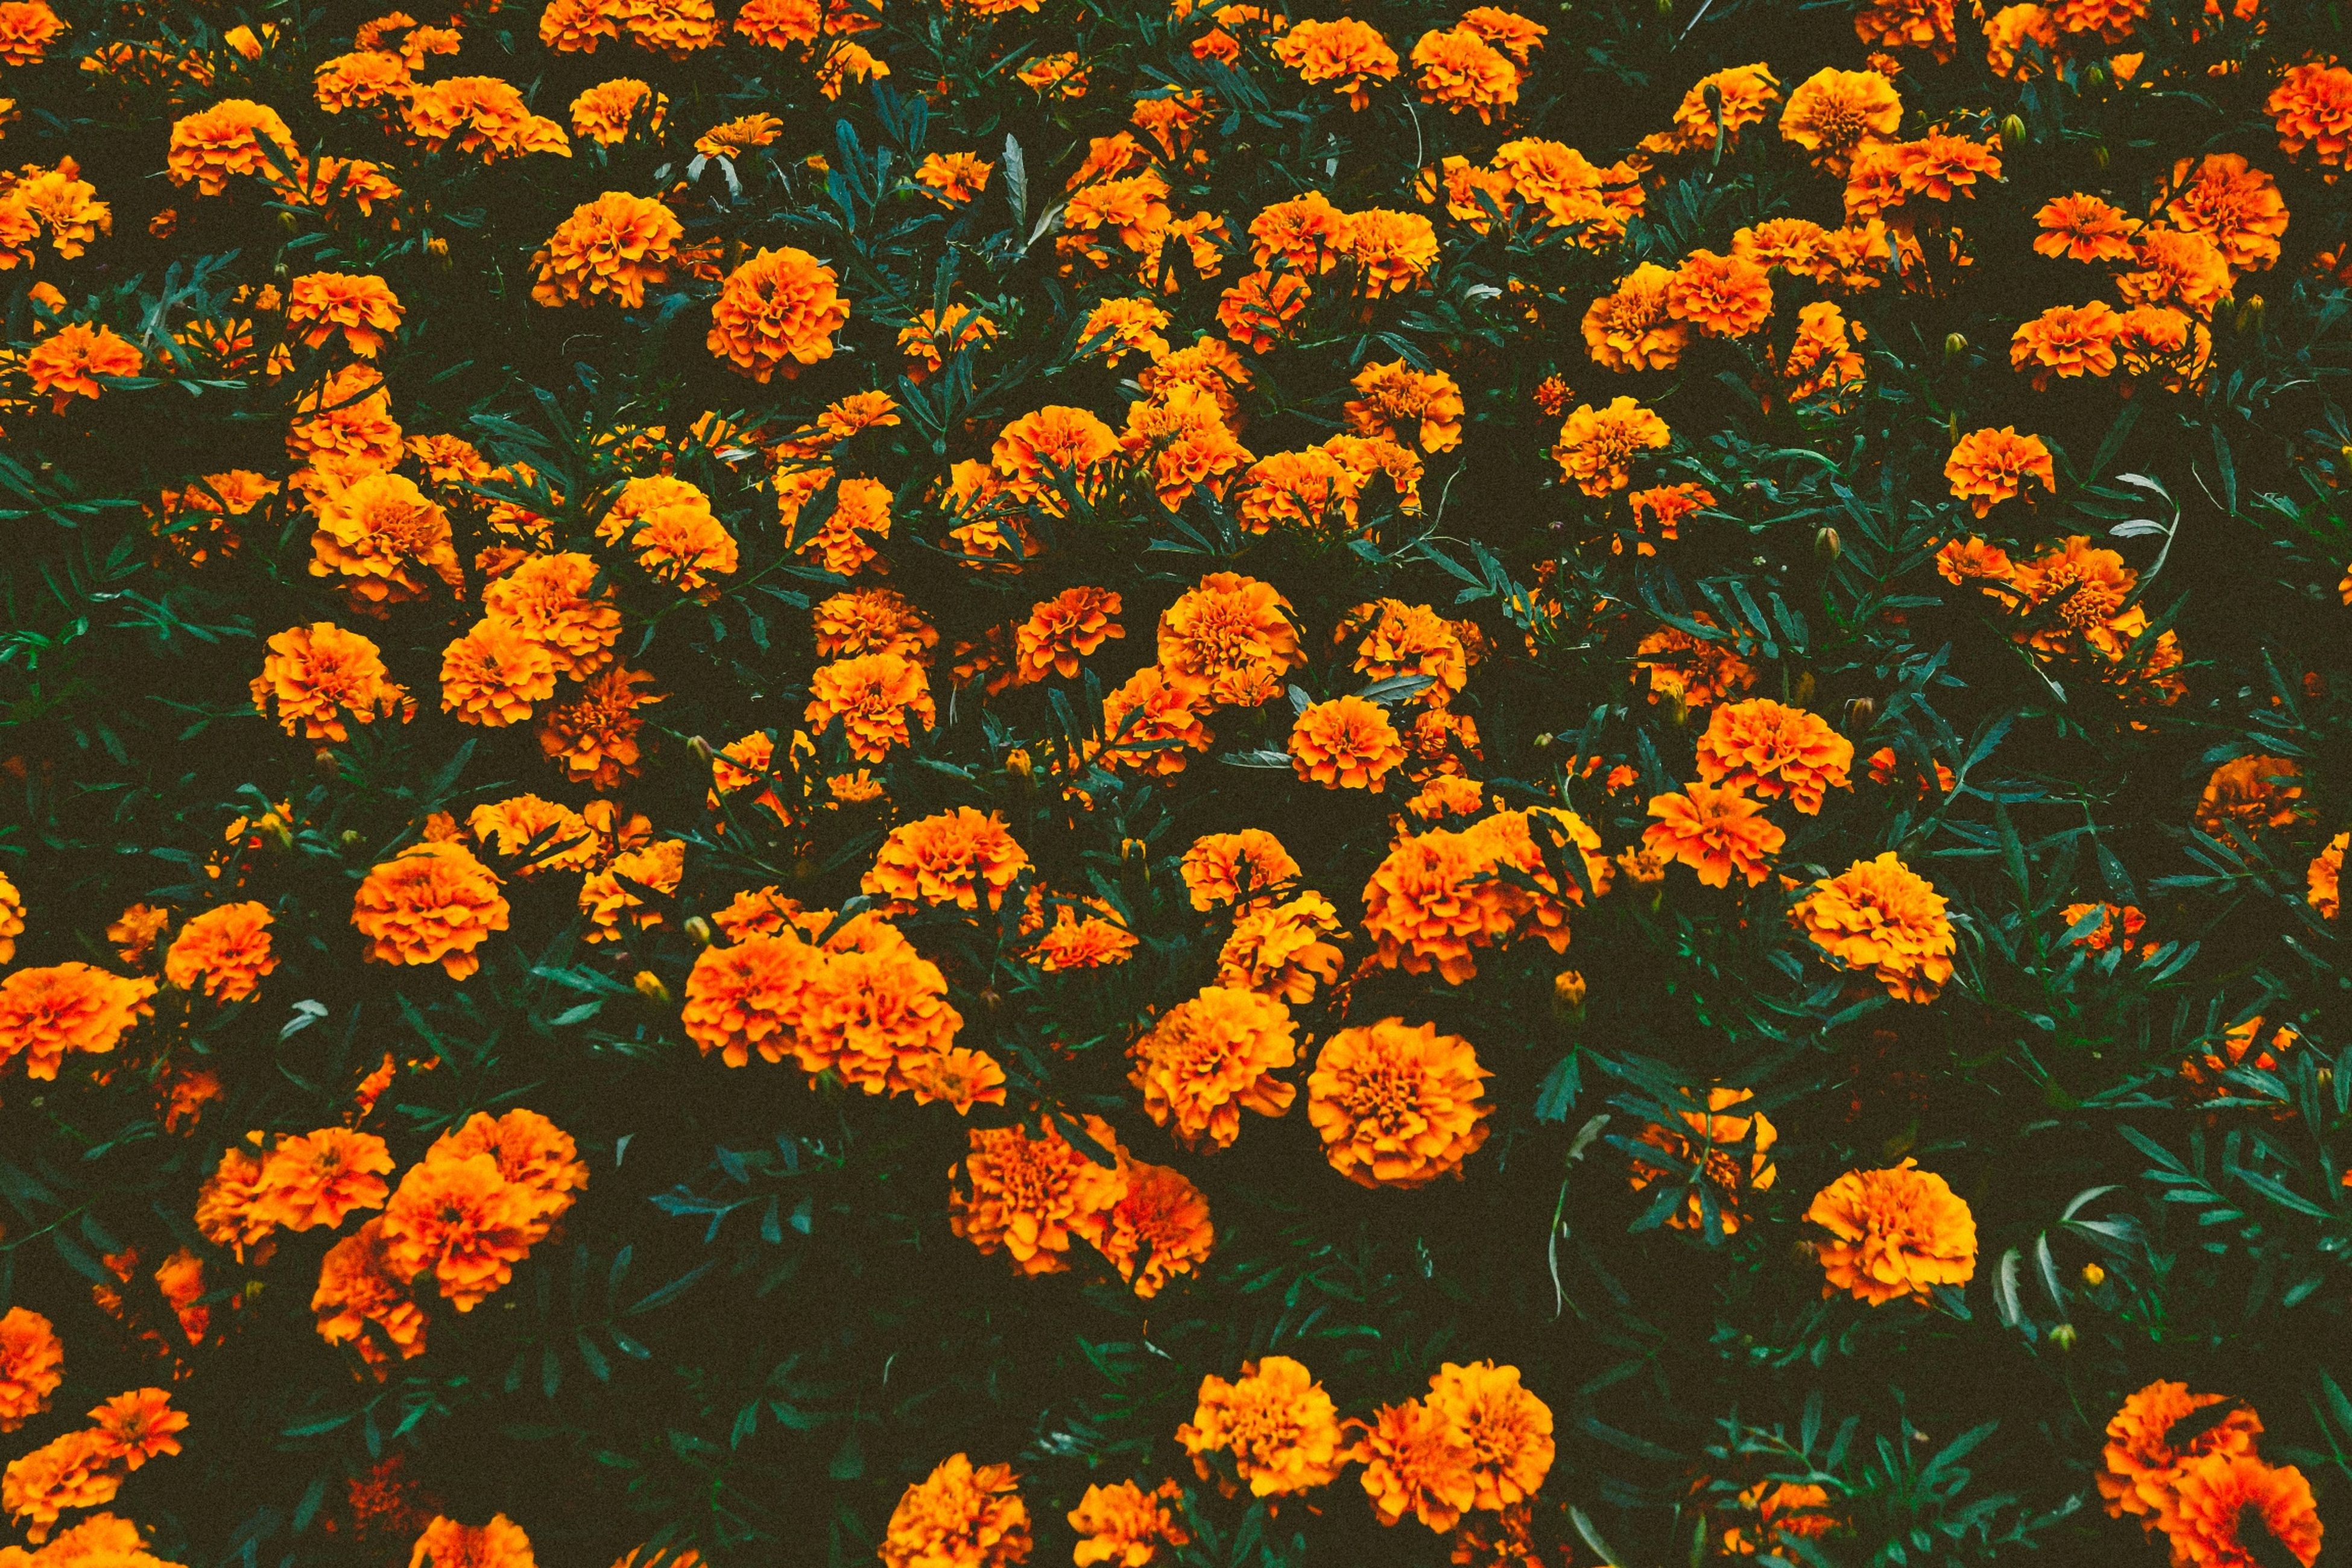 flower, yellow, growth, freshness, petal, fragility, beauty in nature, plant, high angle view, nature, full frame, orange color, leaf, backgrounds, blooming, flower head, no people, in bloom, outdoors, day